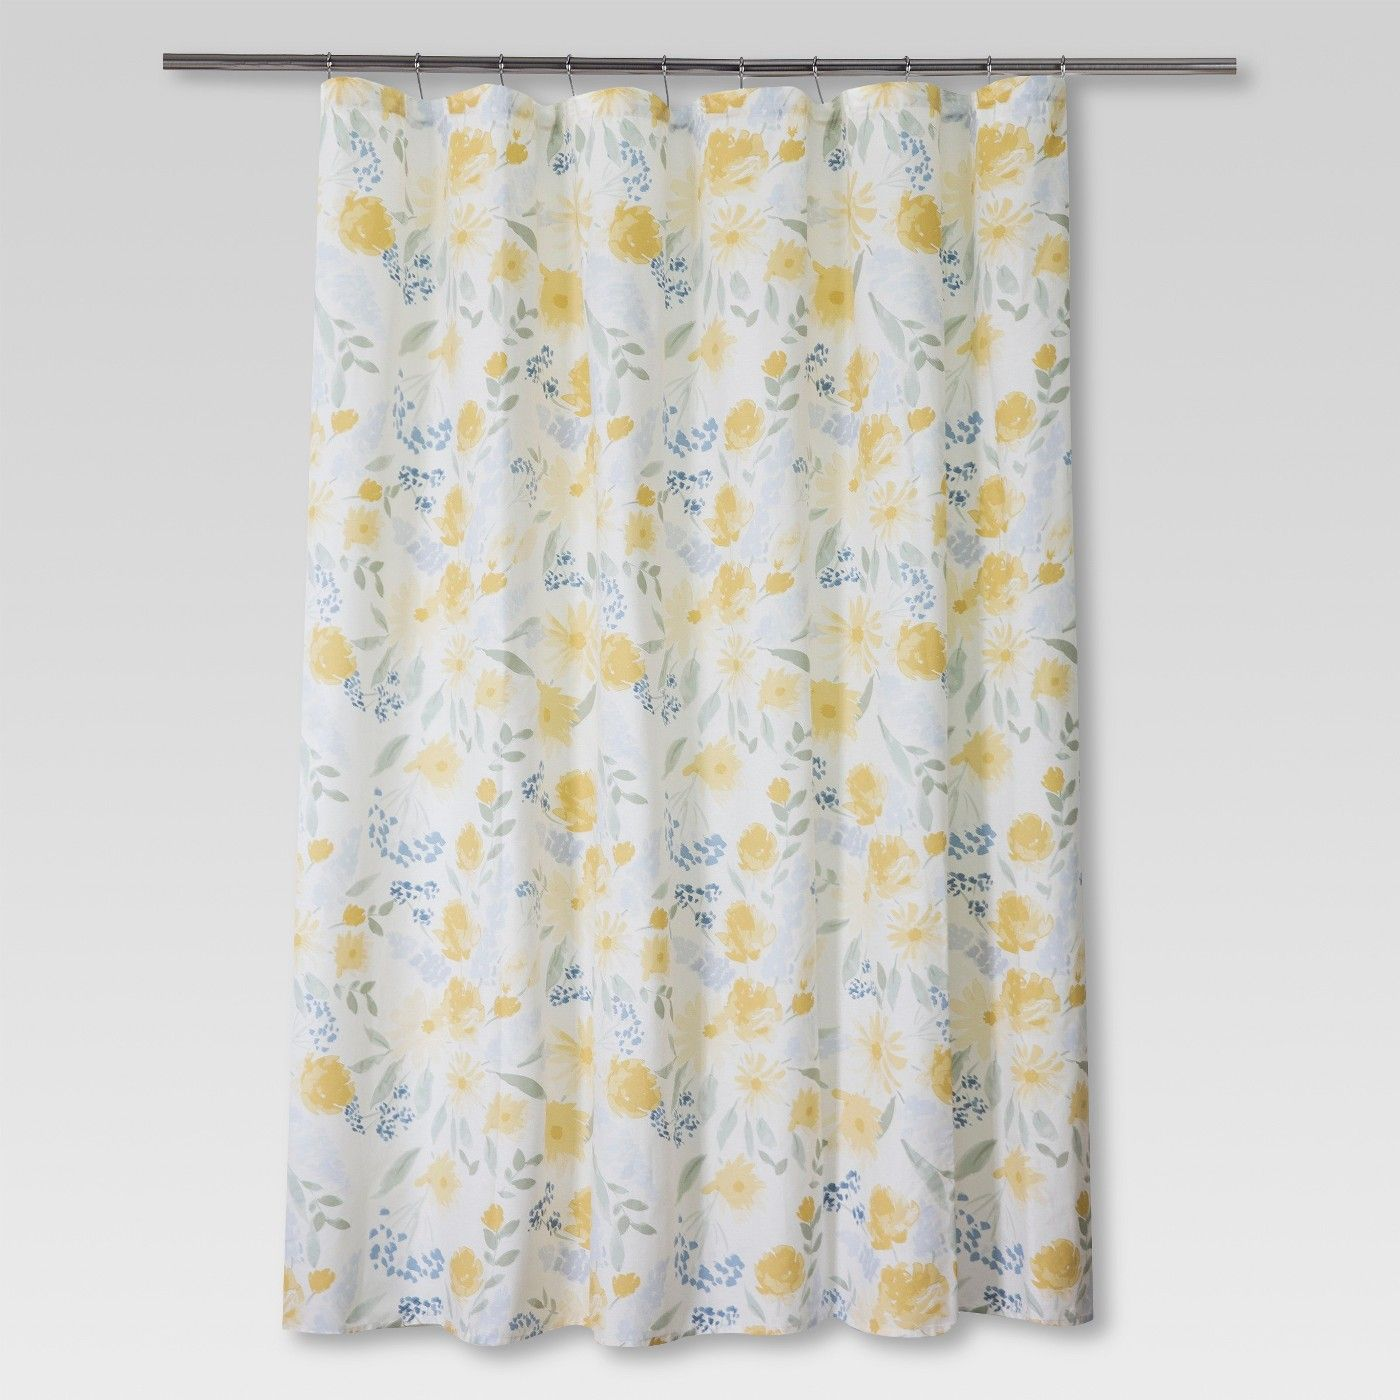 floral shower curtain yellow blue